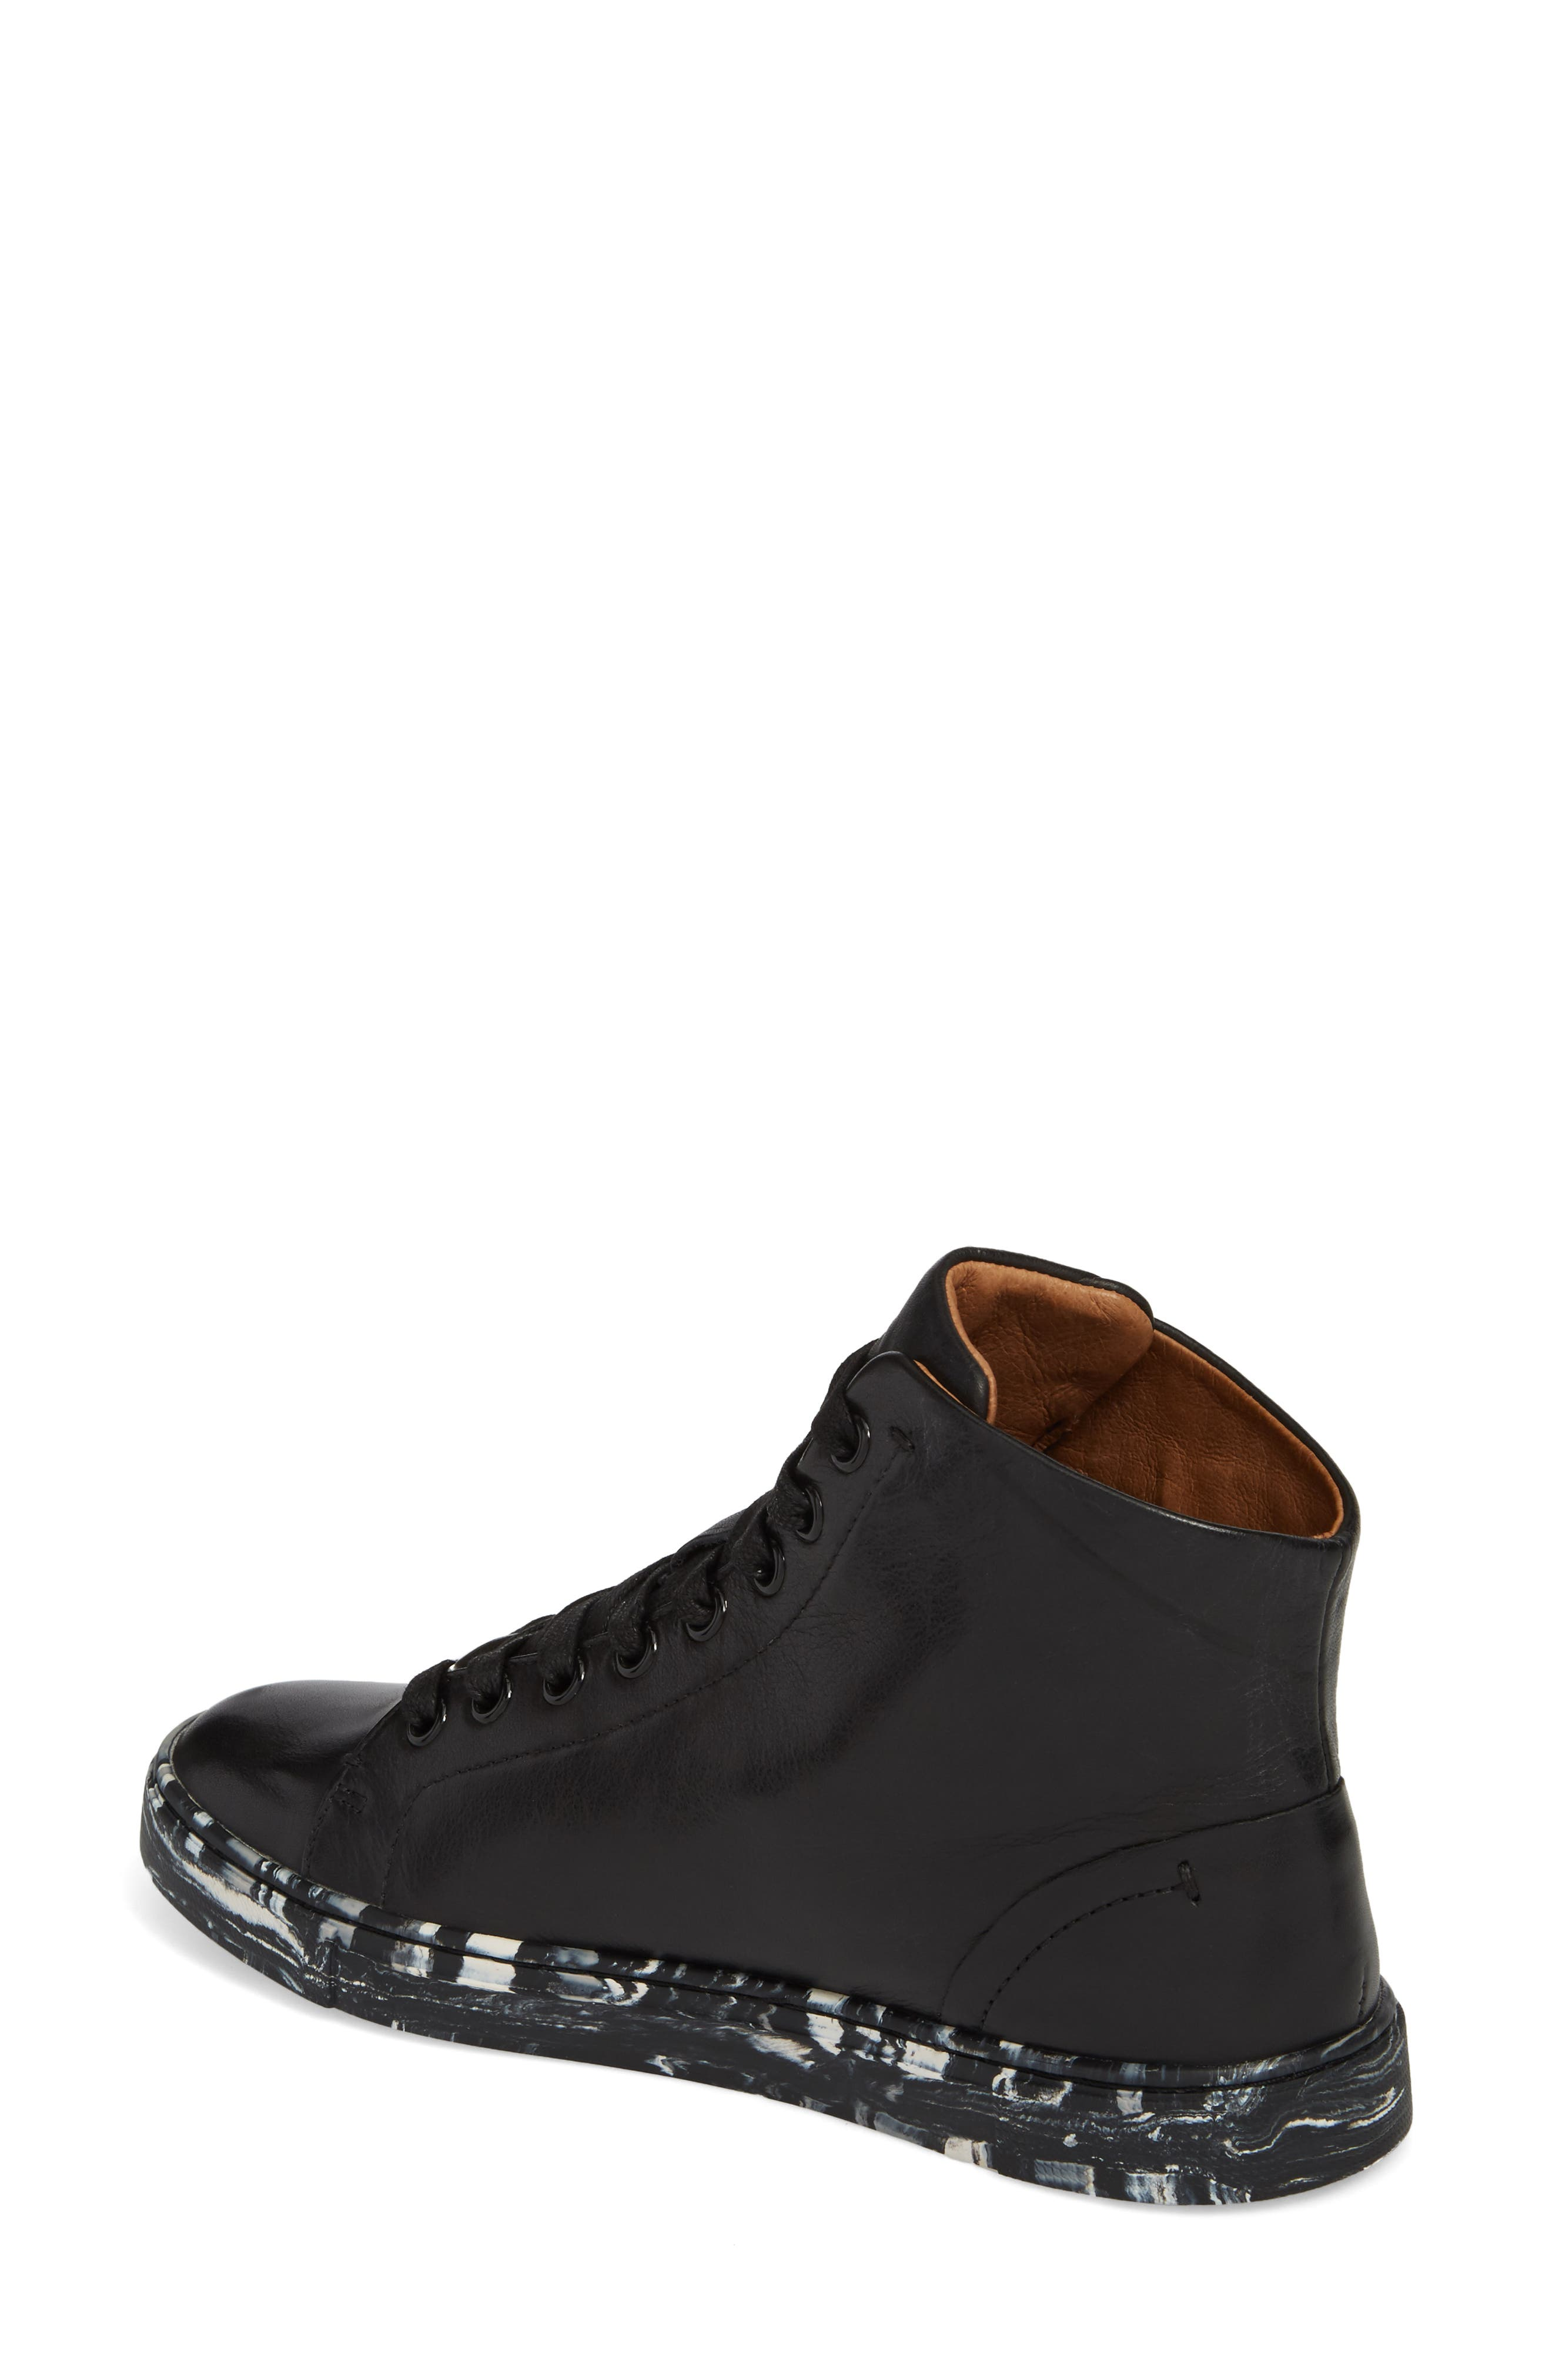 Ivy High Top Sneaker,                             Alternate thumbnail 2, color,                             Black Leather